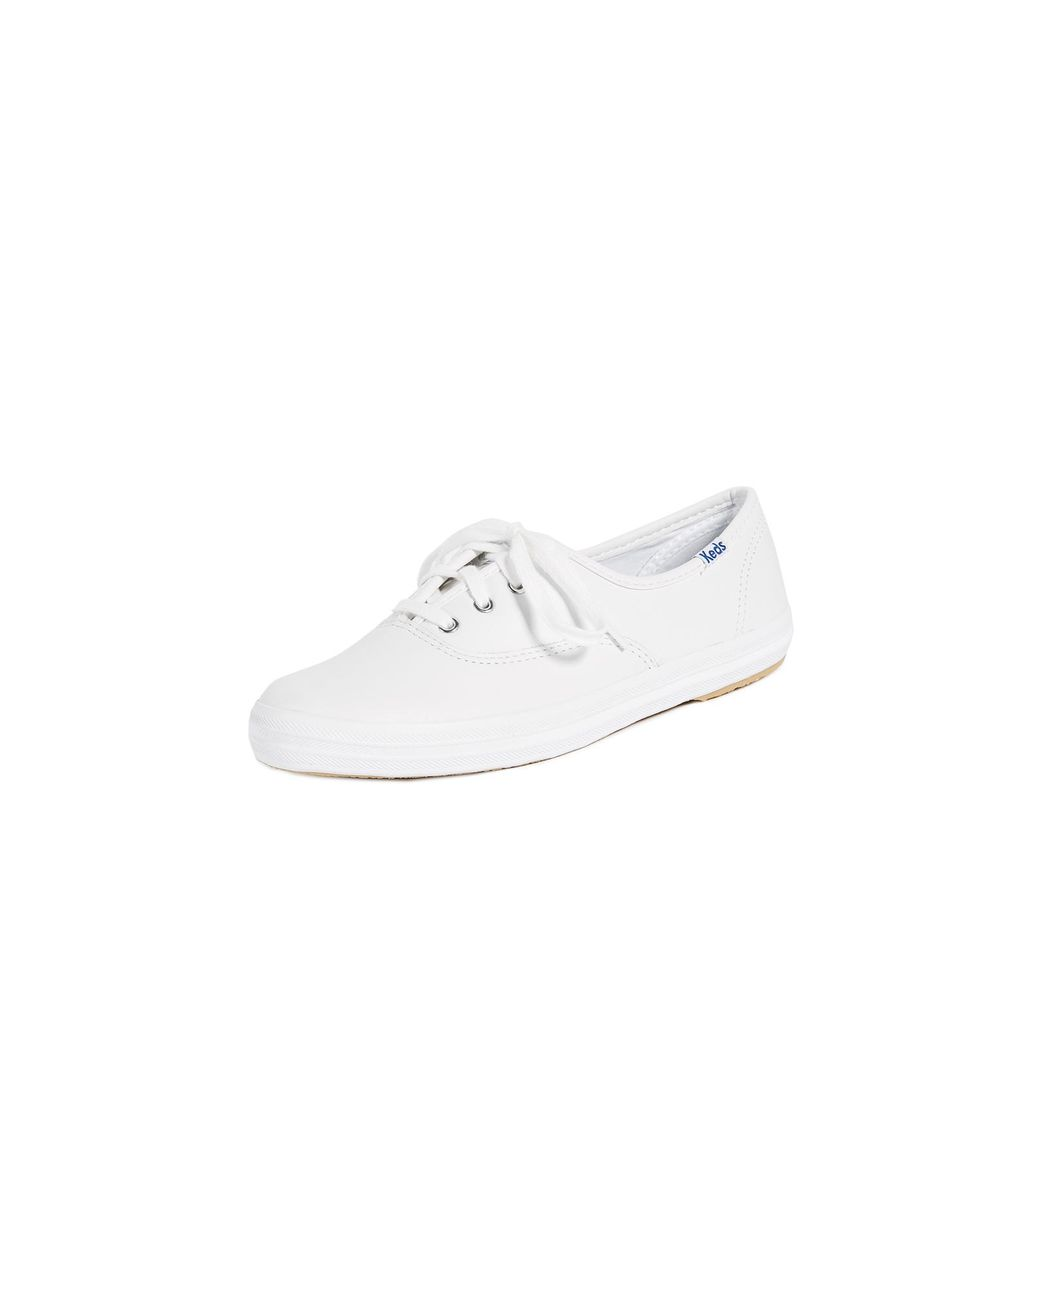 Keds Leather Champion Core Sneakers in